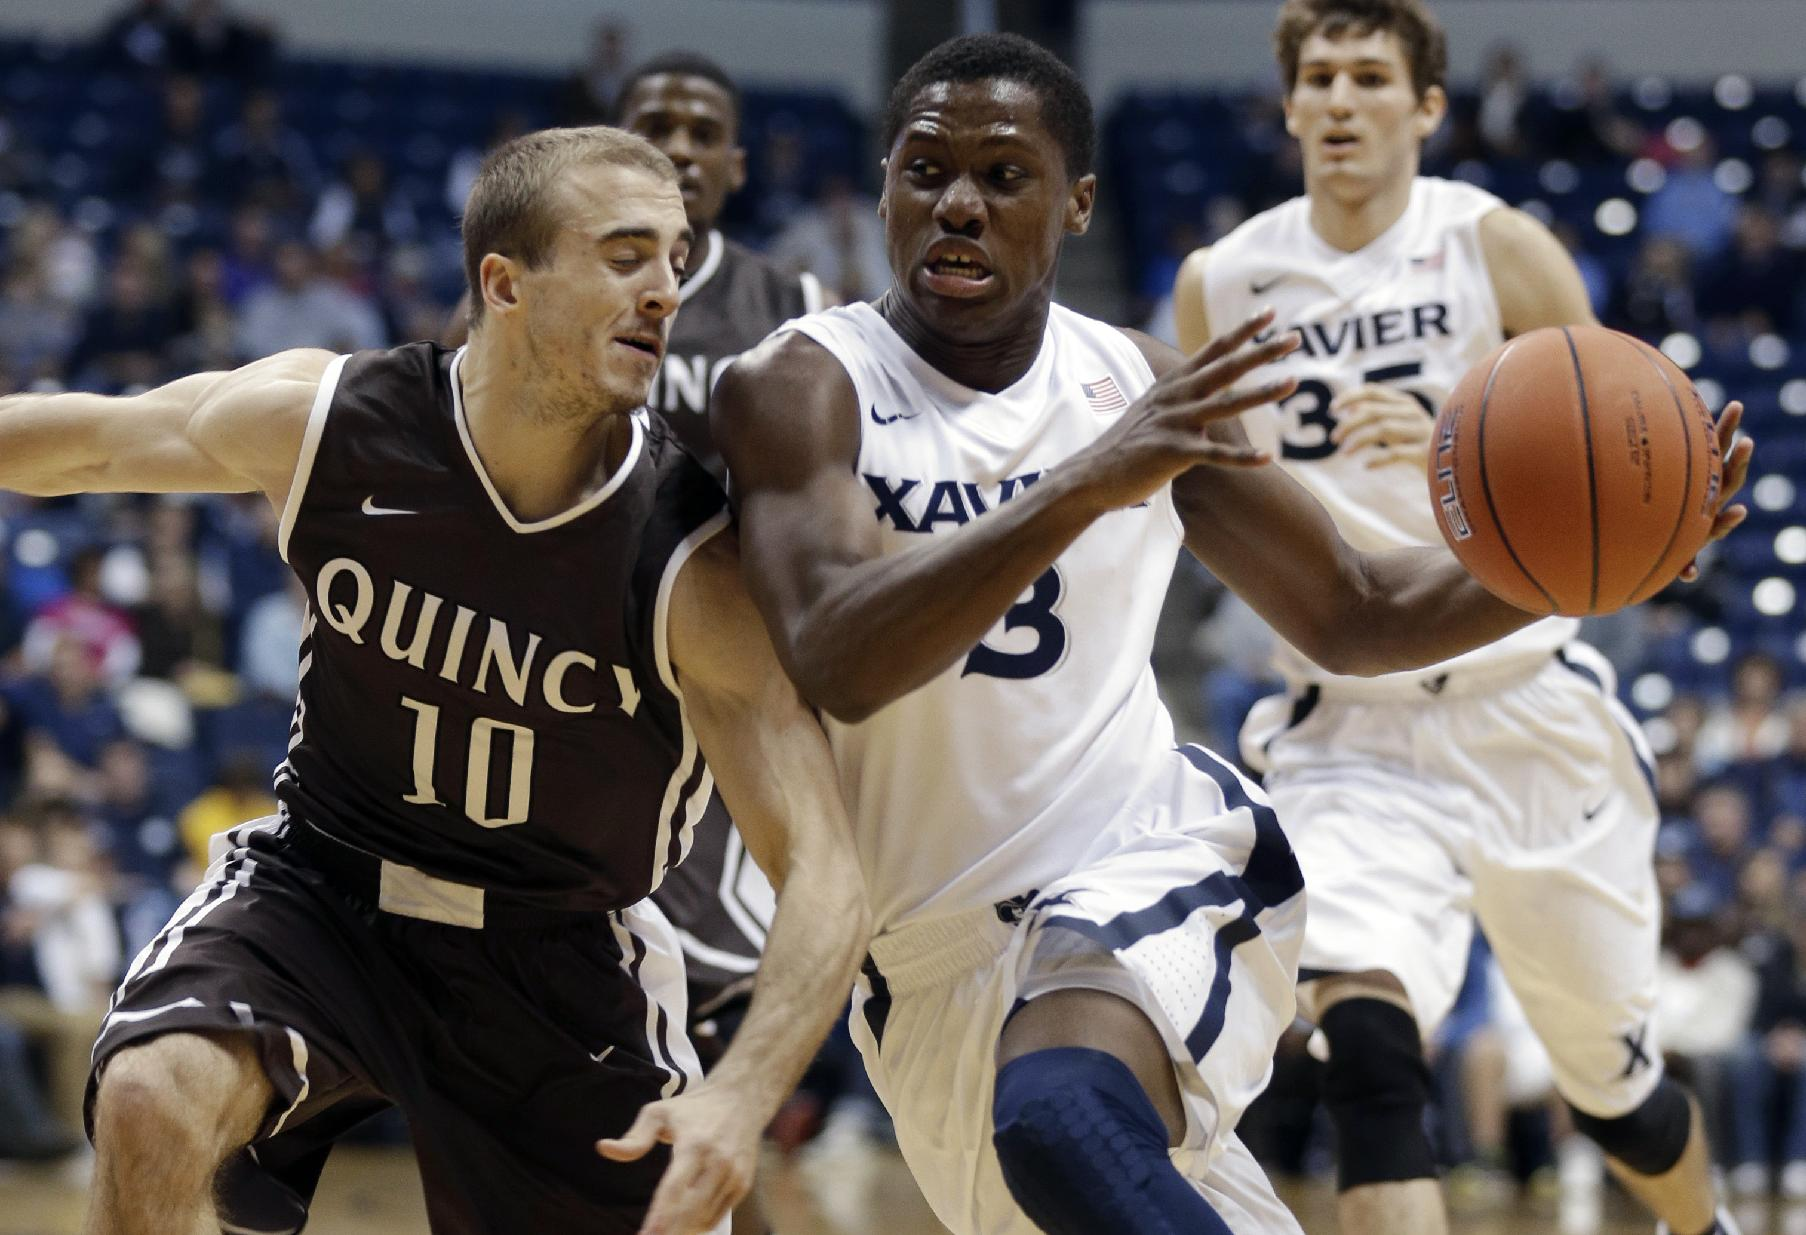 Xavier guard Brandon Randolph (3) drives against Quincy guard Grant Meyer (10) in the first half of an NCAA exhibition college basketball game, Saturday, Nov. 2, 2013, in Cincinnati